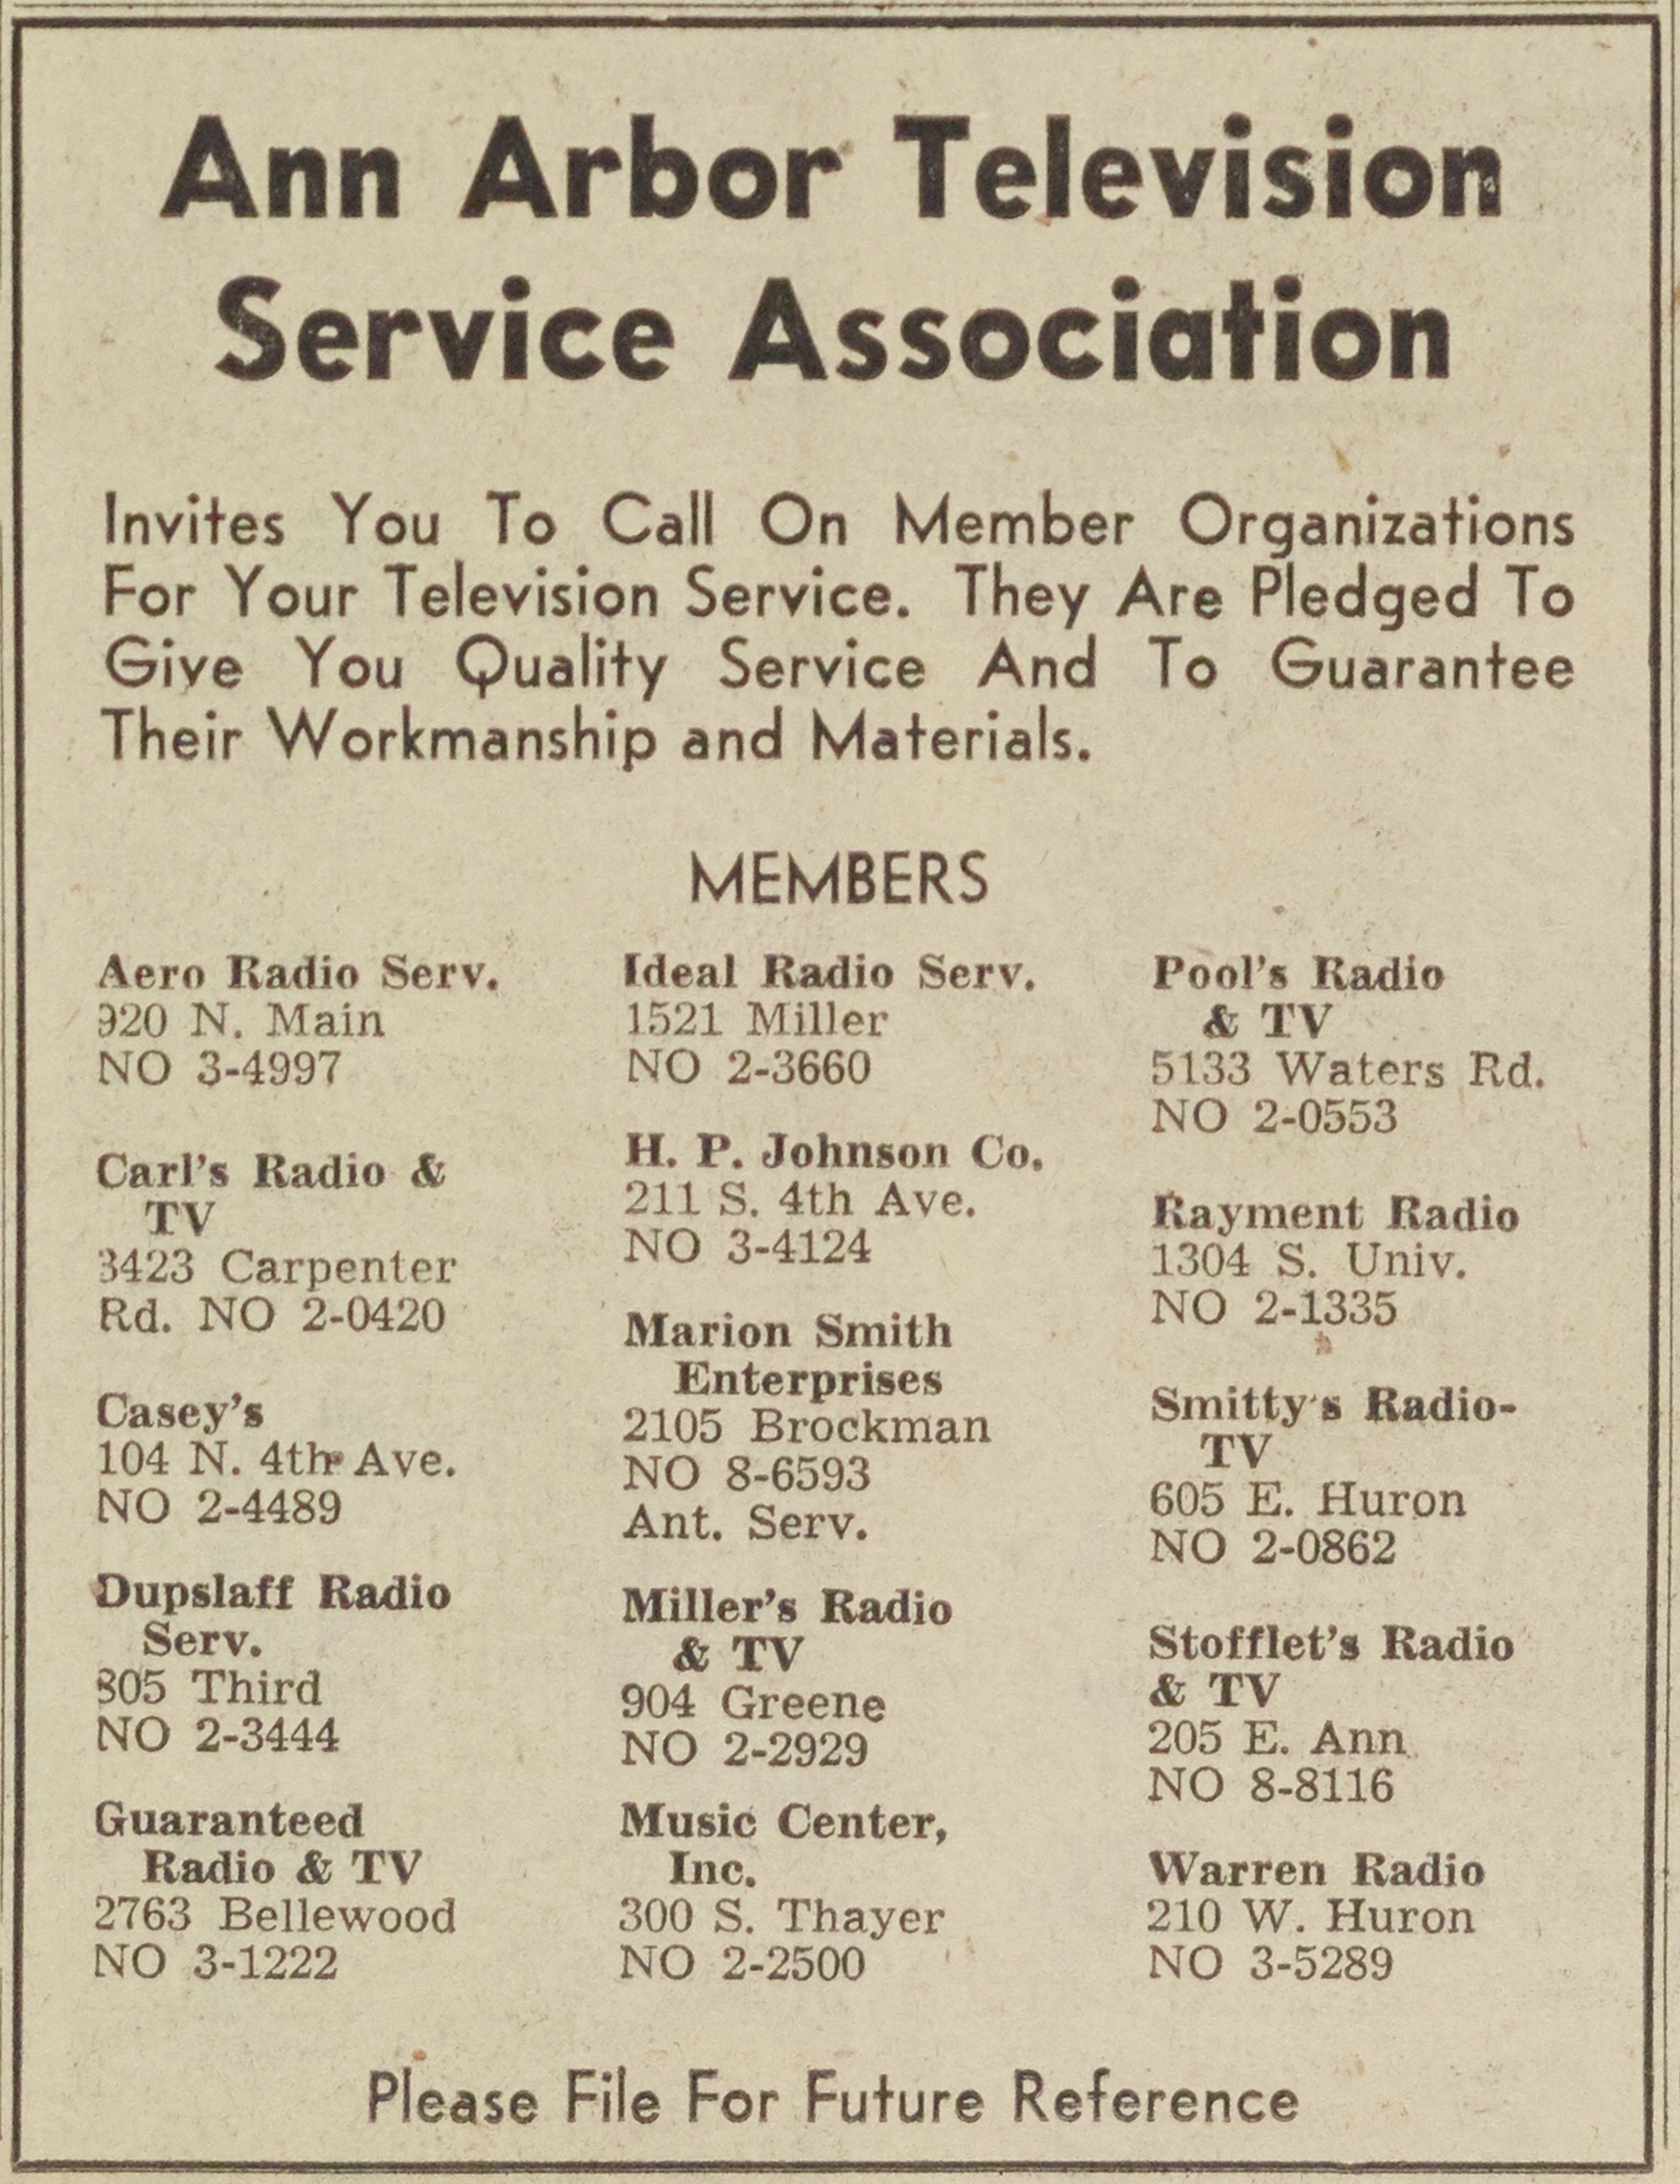 Ann Arbor Television Service Association image